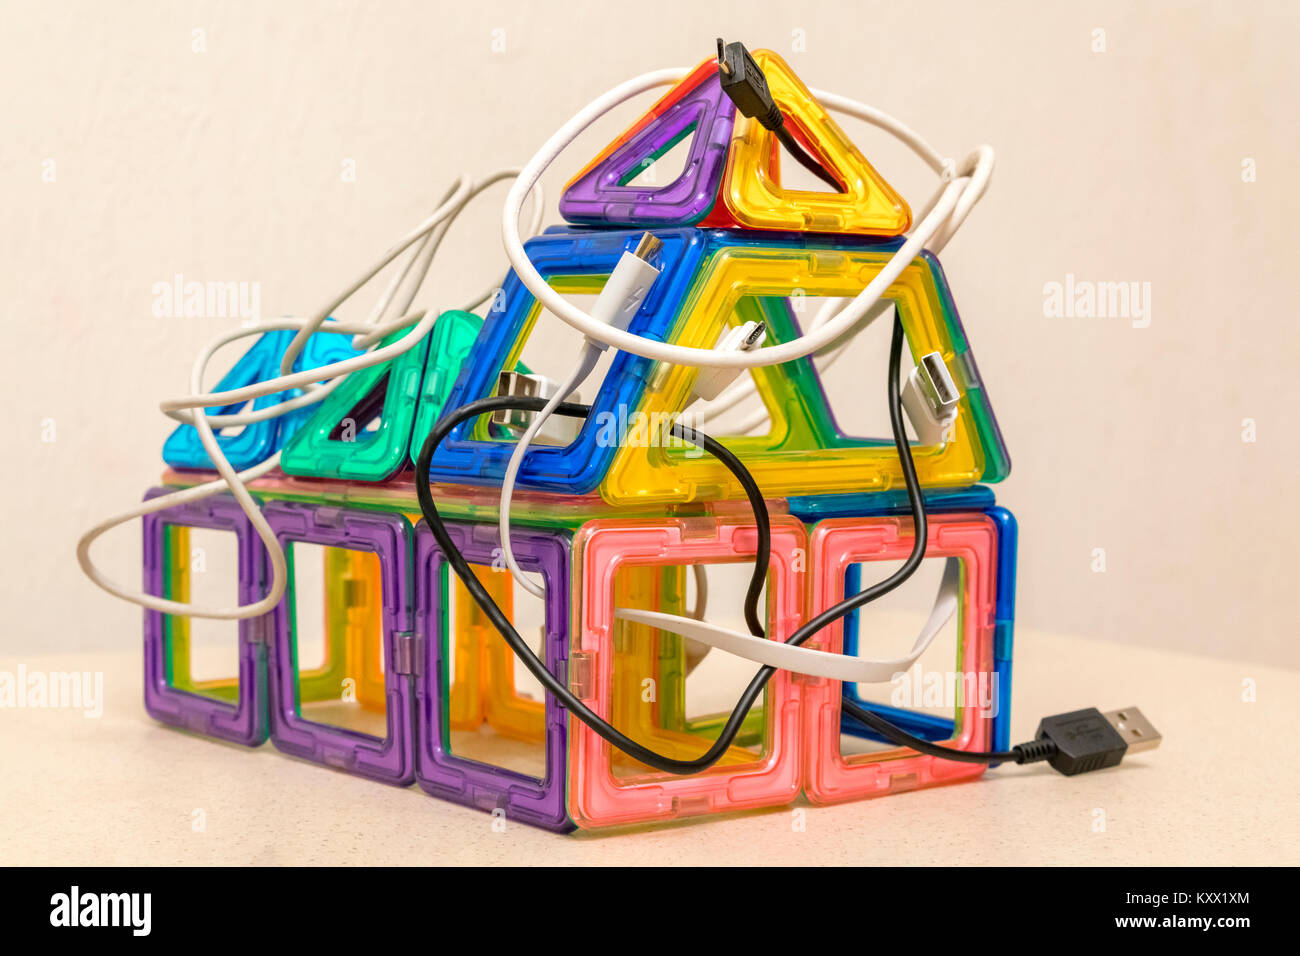 house wires, cables, internet. Digital Home Concept Stock Photo ...